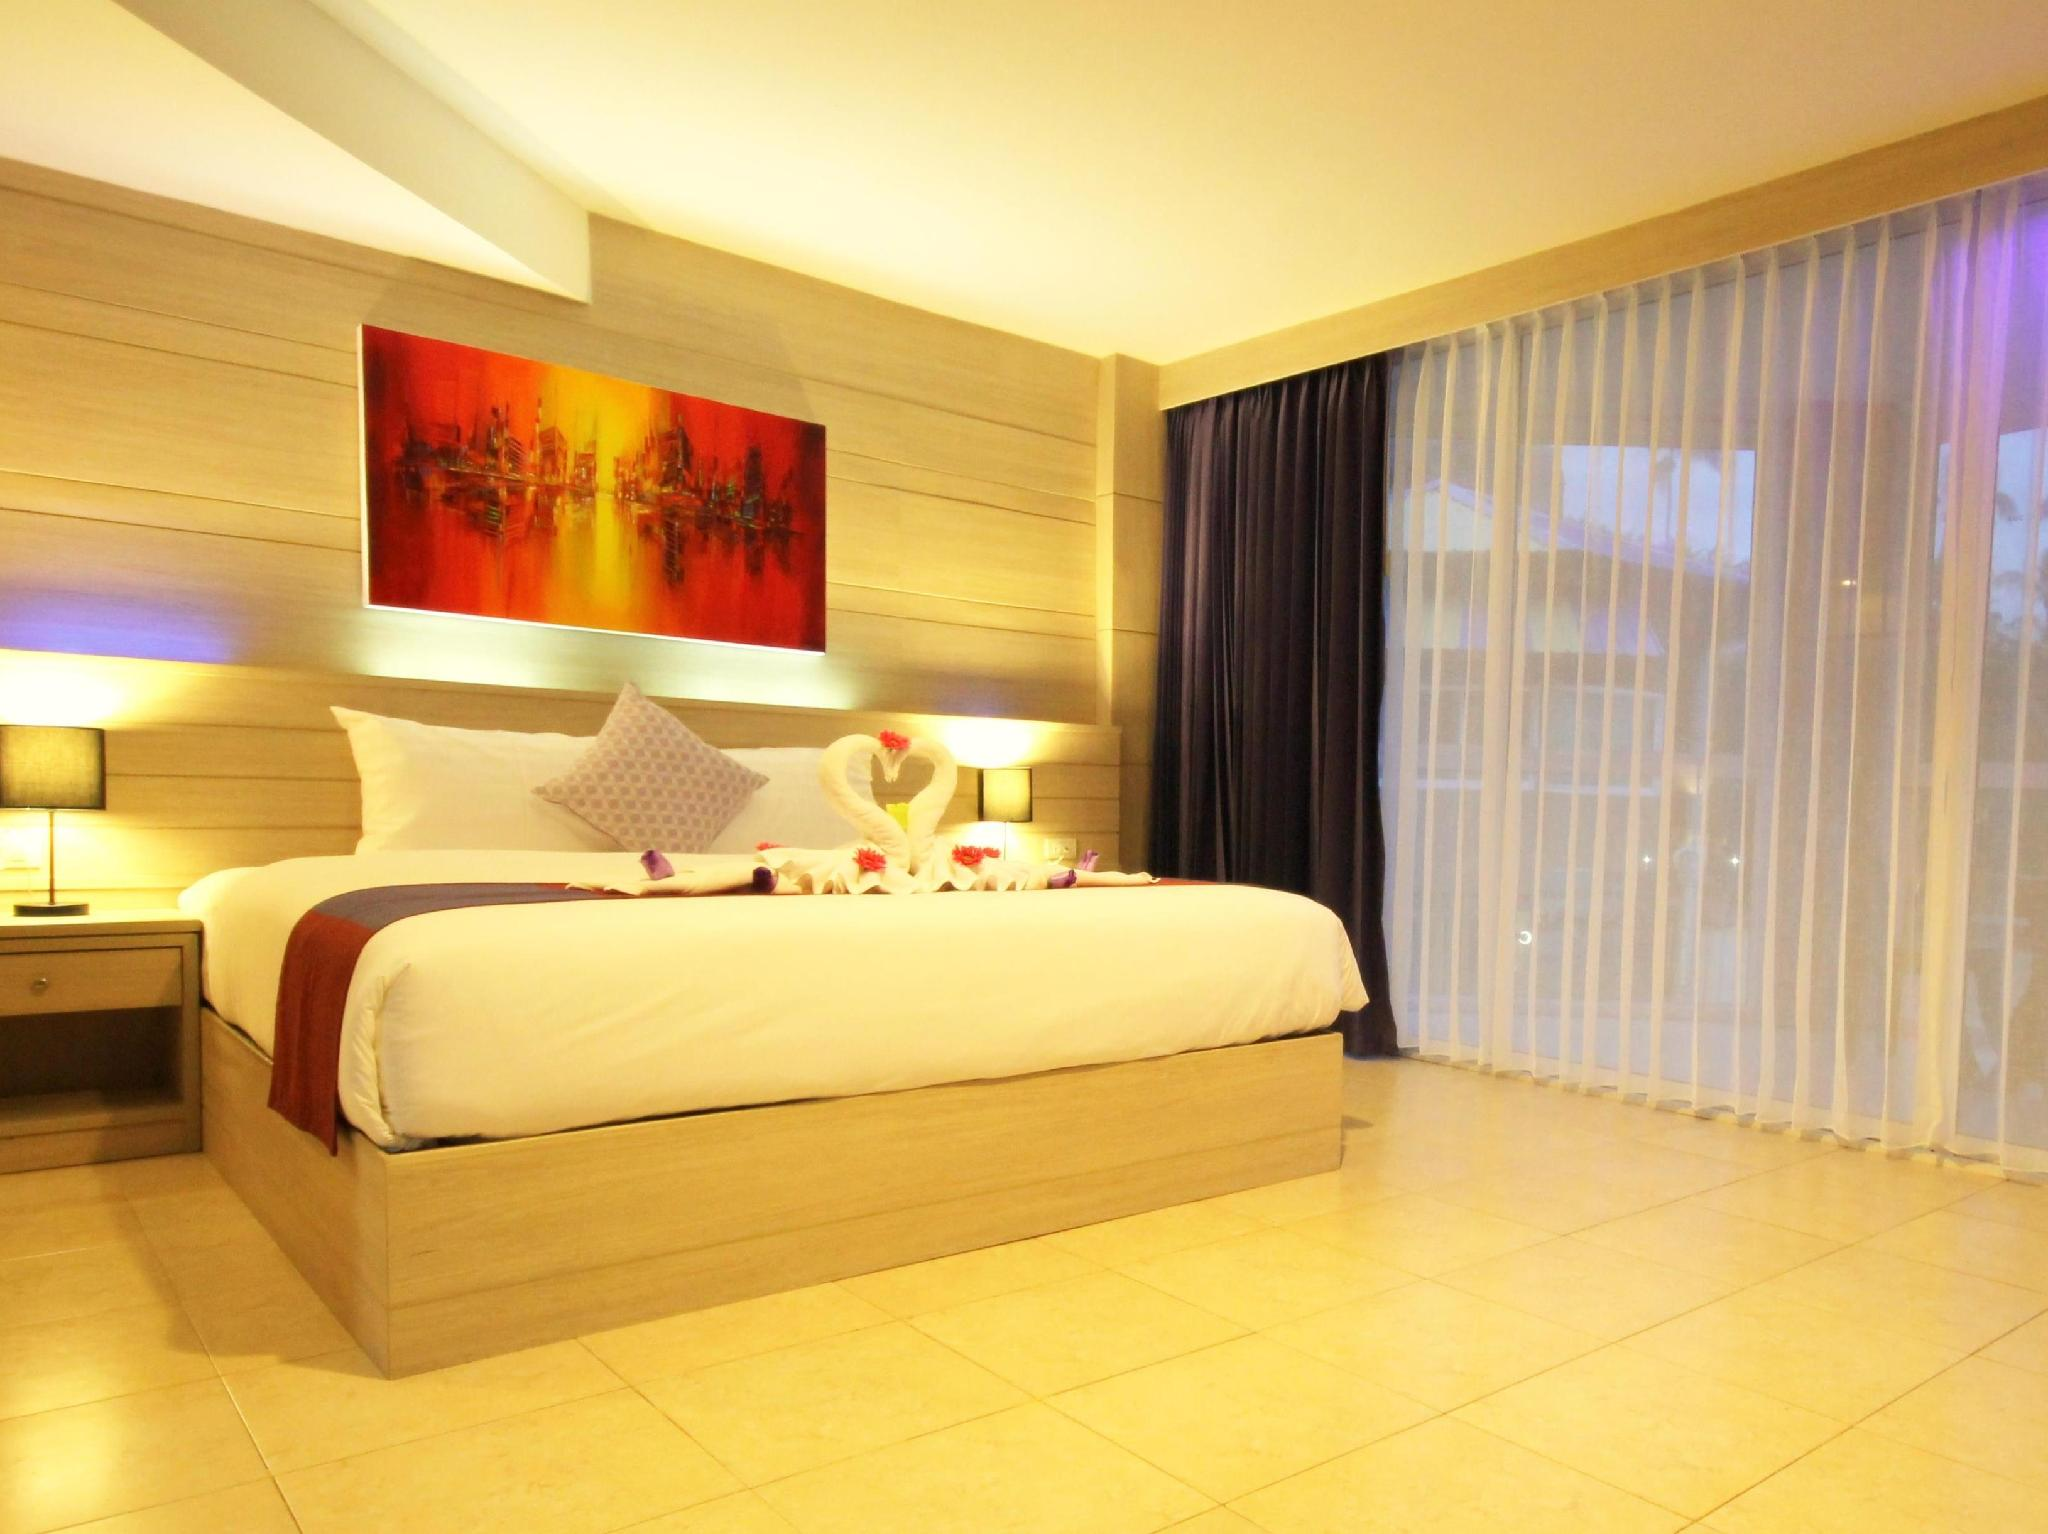 Baywatch Boutique Hotel Ao Nang - Hotell och Boende i Thailand i Asien